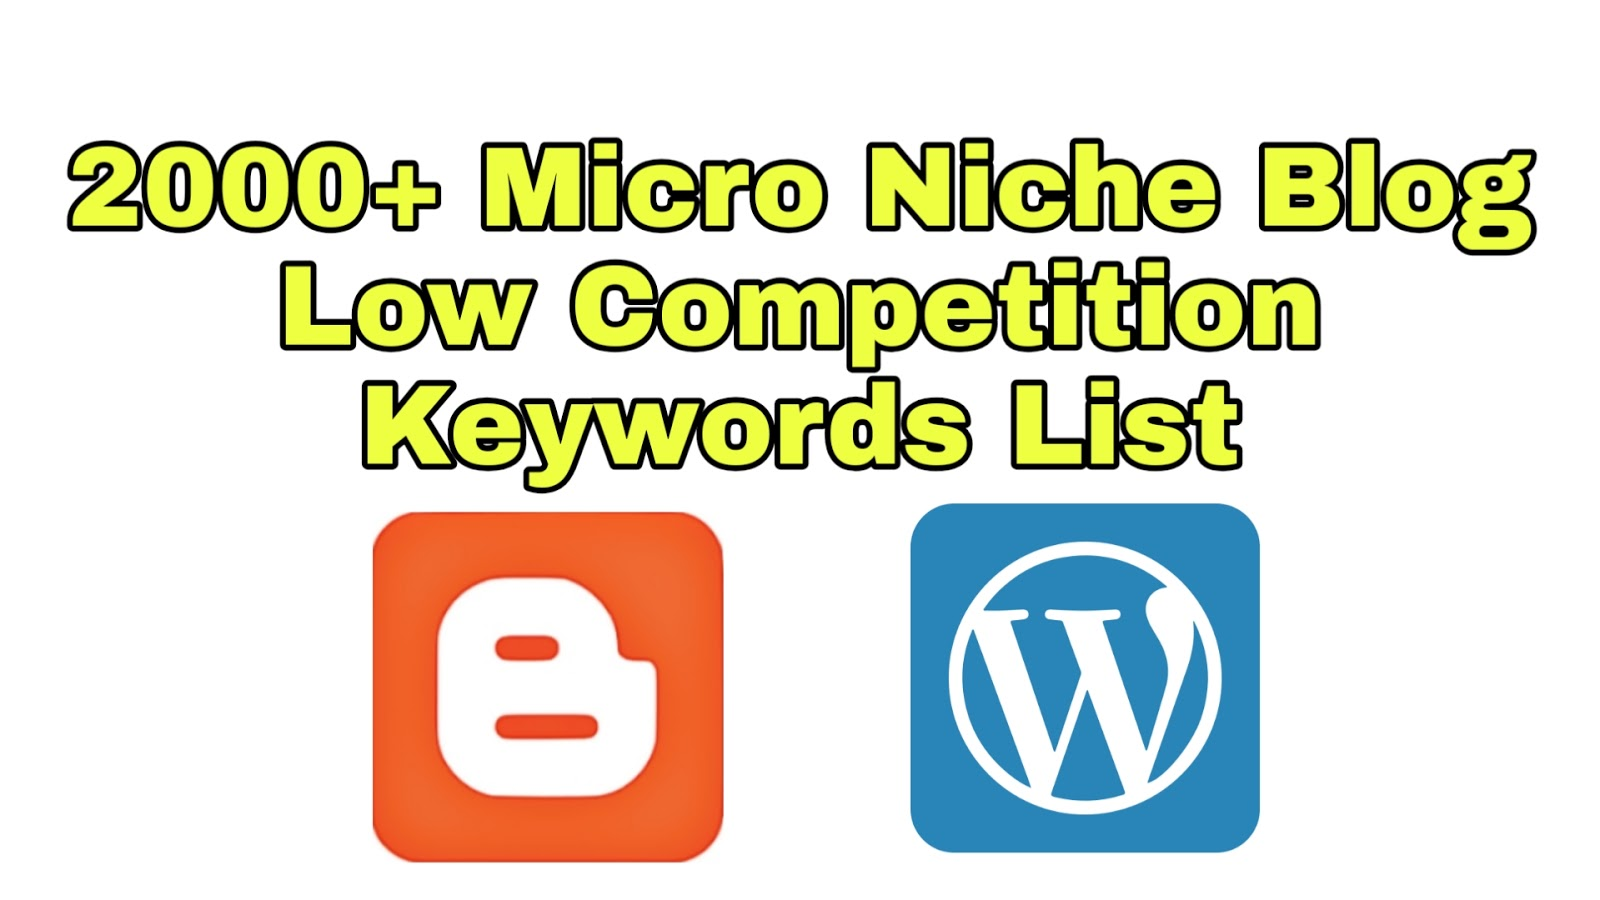 2000+ Micro Niche Blog Low Competition Keywords List